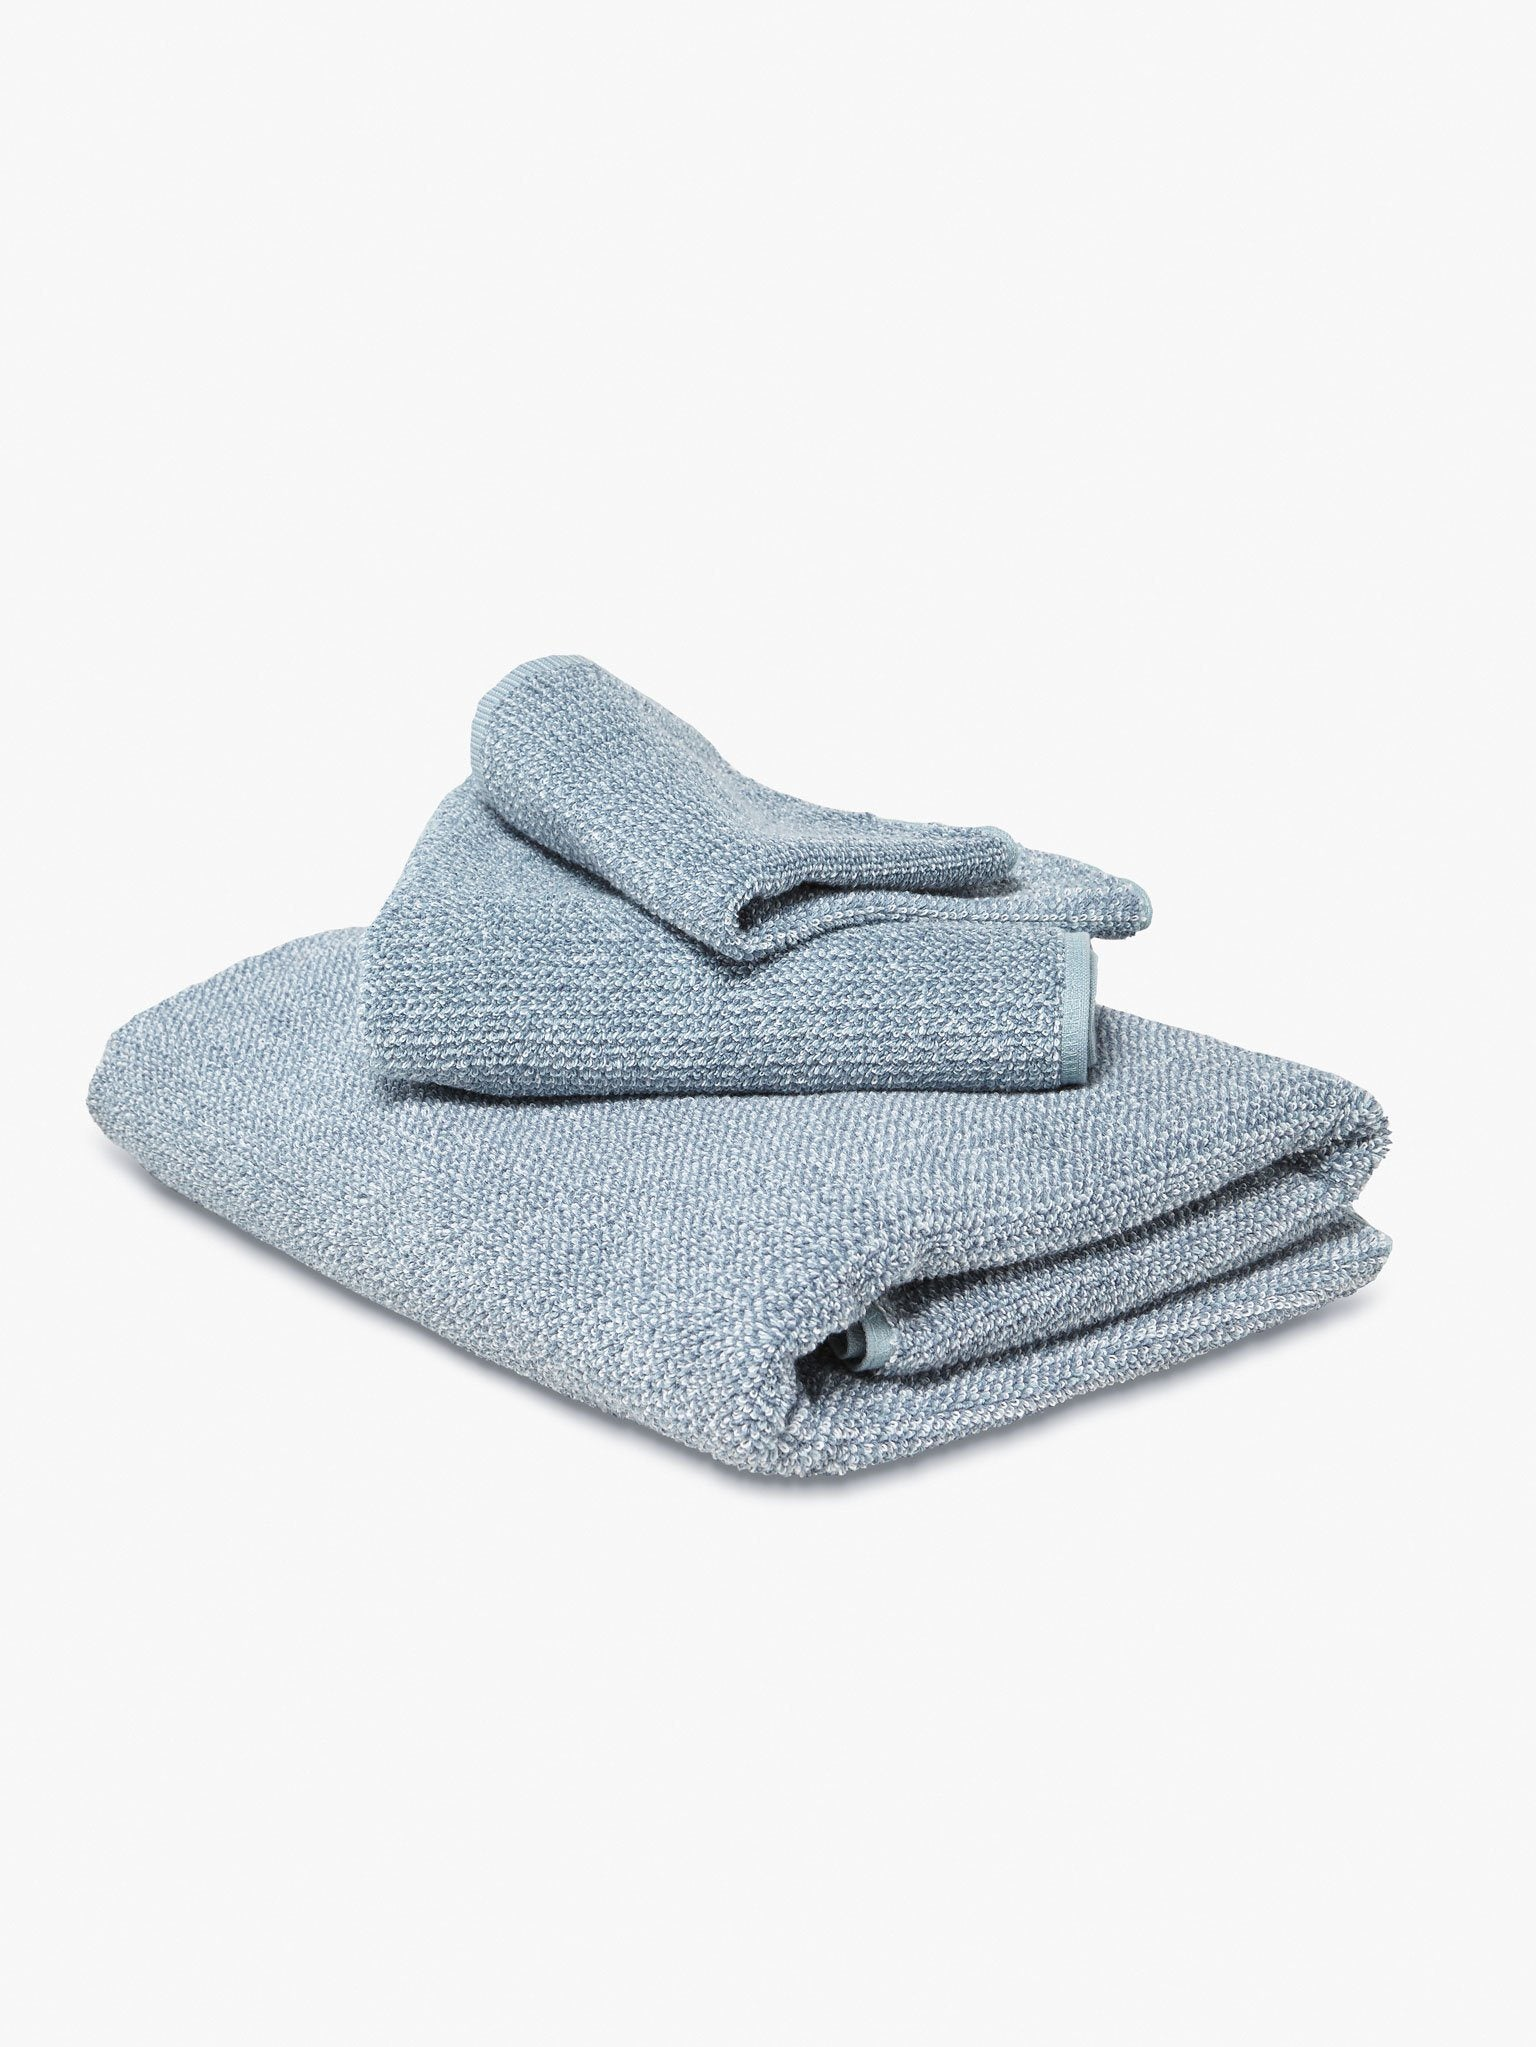 Tweed Marine Towels Cool Galah Summer 20